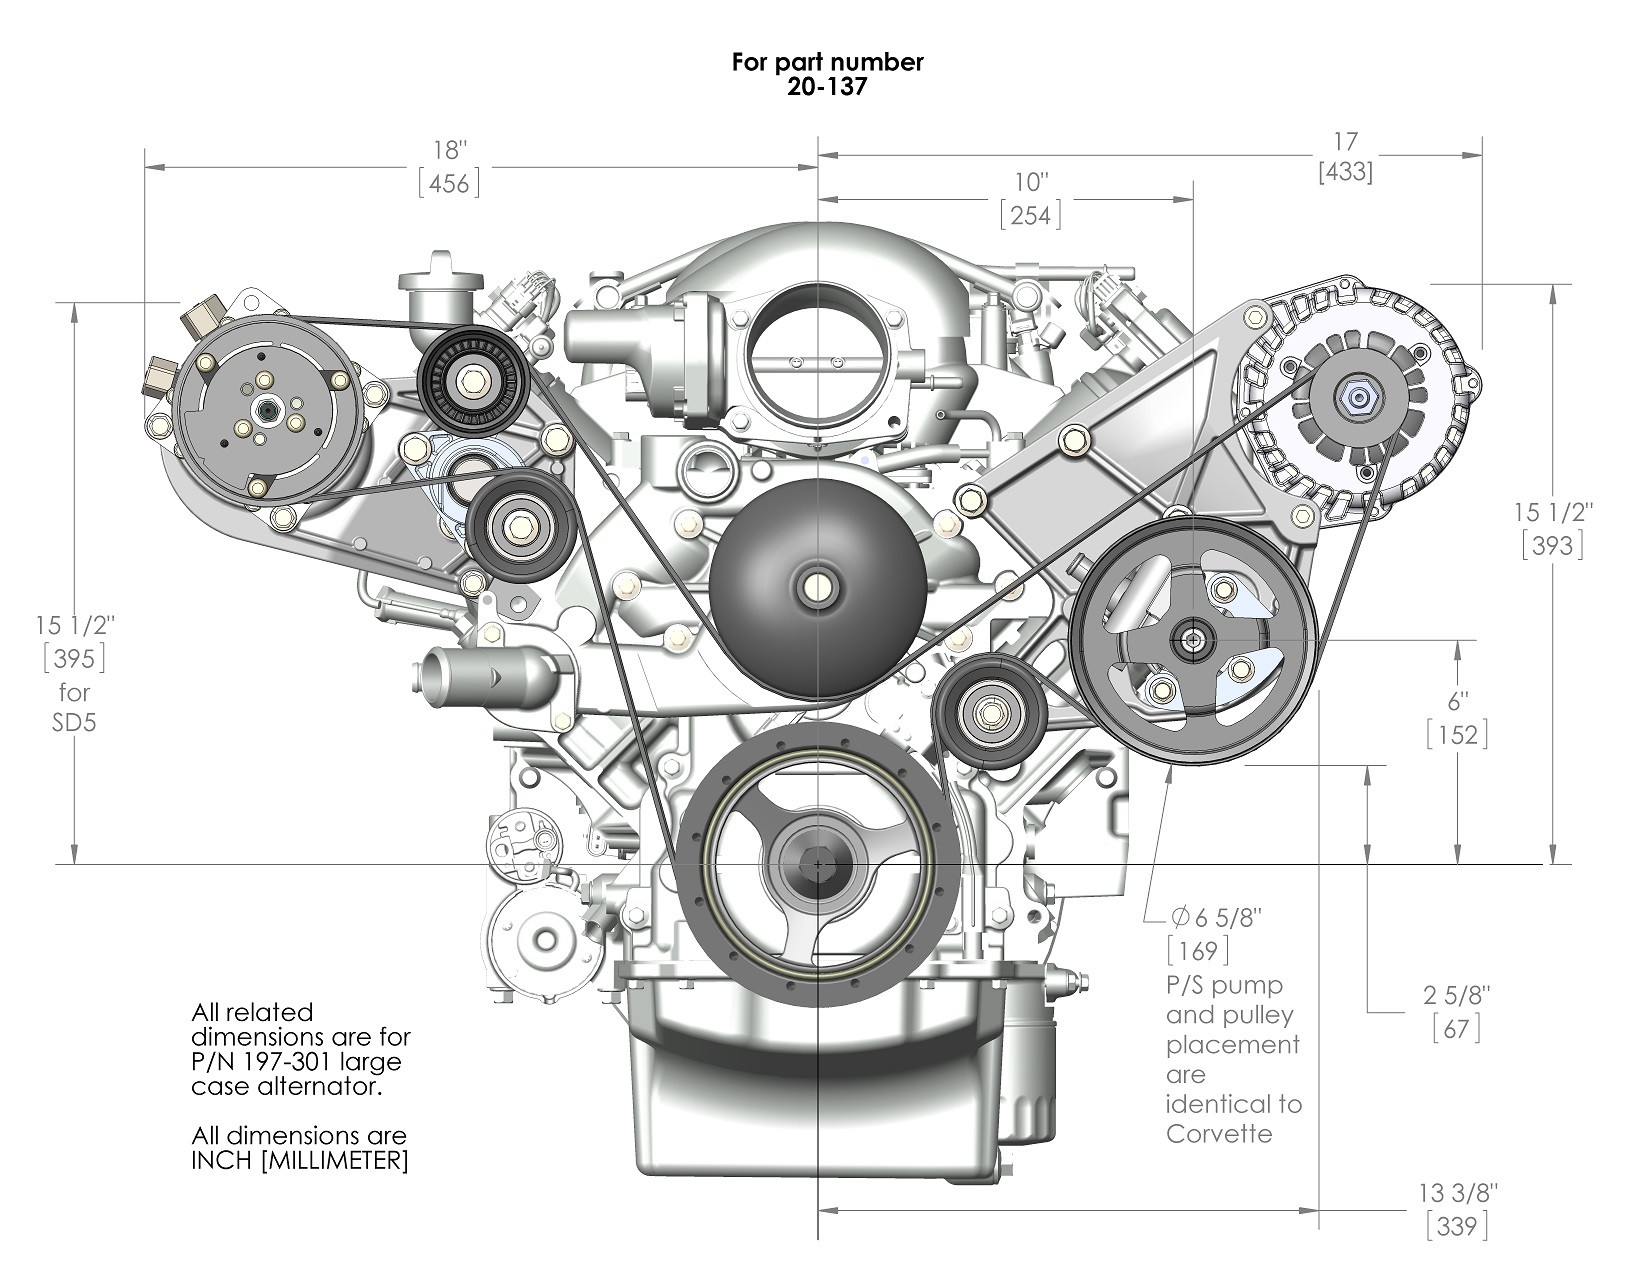 Car Engine Diagram with Labeled 20 137 Dimensions1 1650—1275 Ls Engines Pinterest Of Car Engine Diagram with Labeled